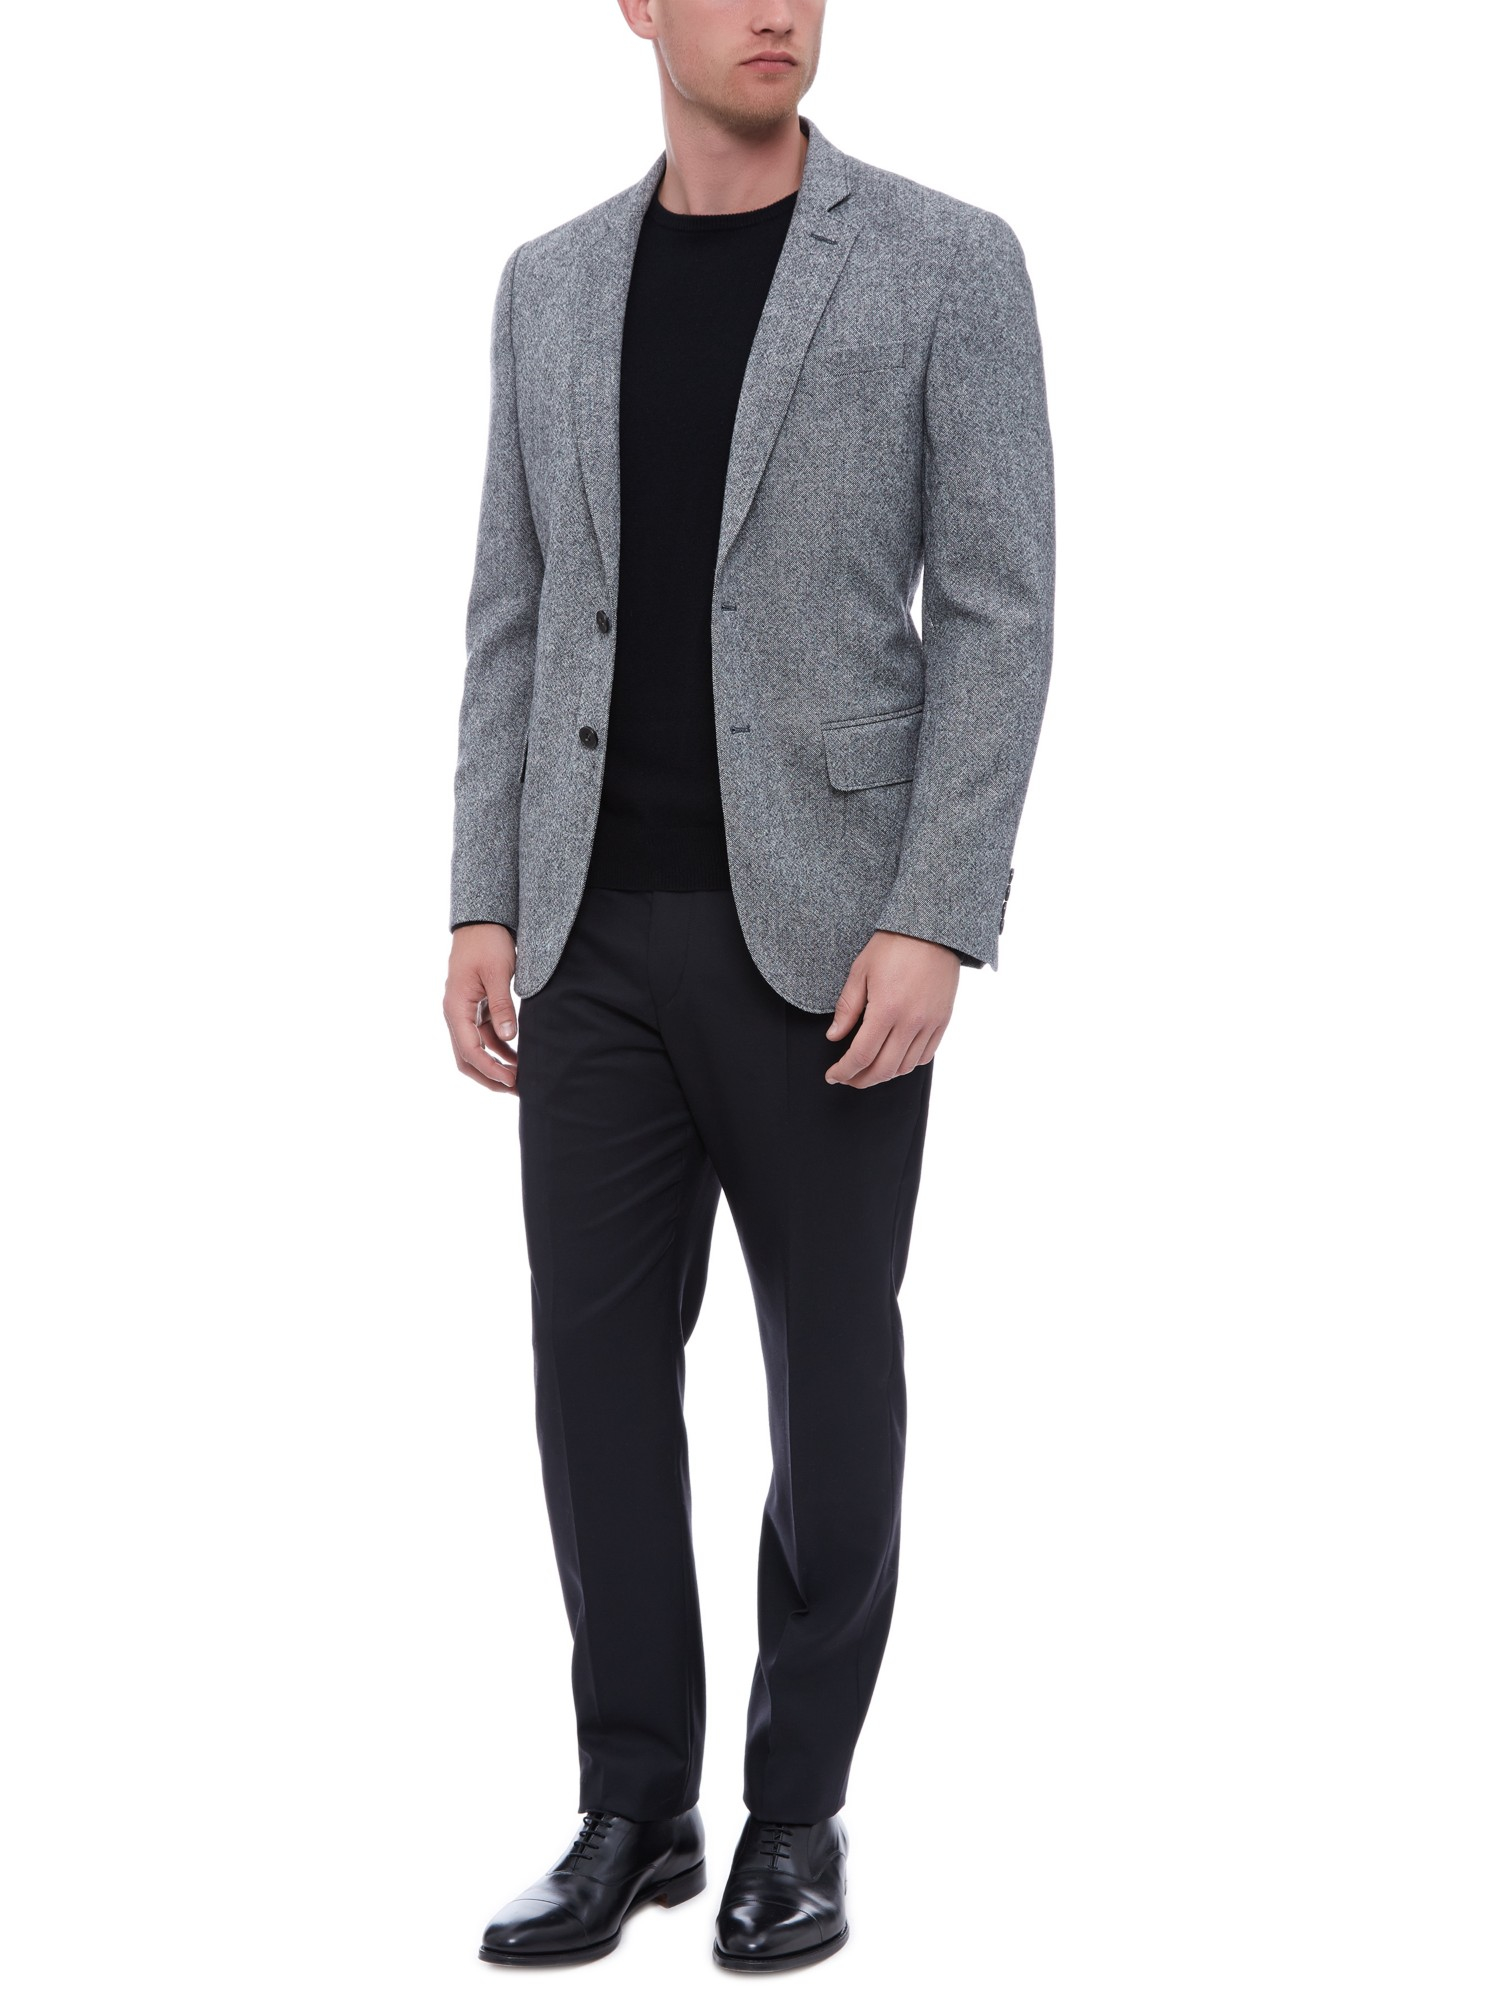 Jaeger Salt Pepper Wool Blazer in Black/White (Black) for Men